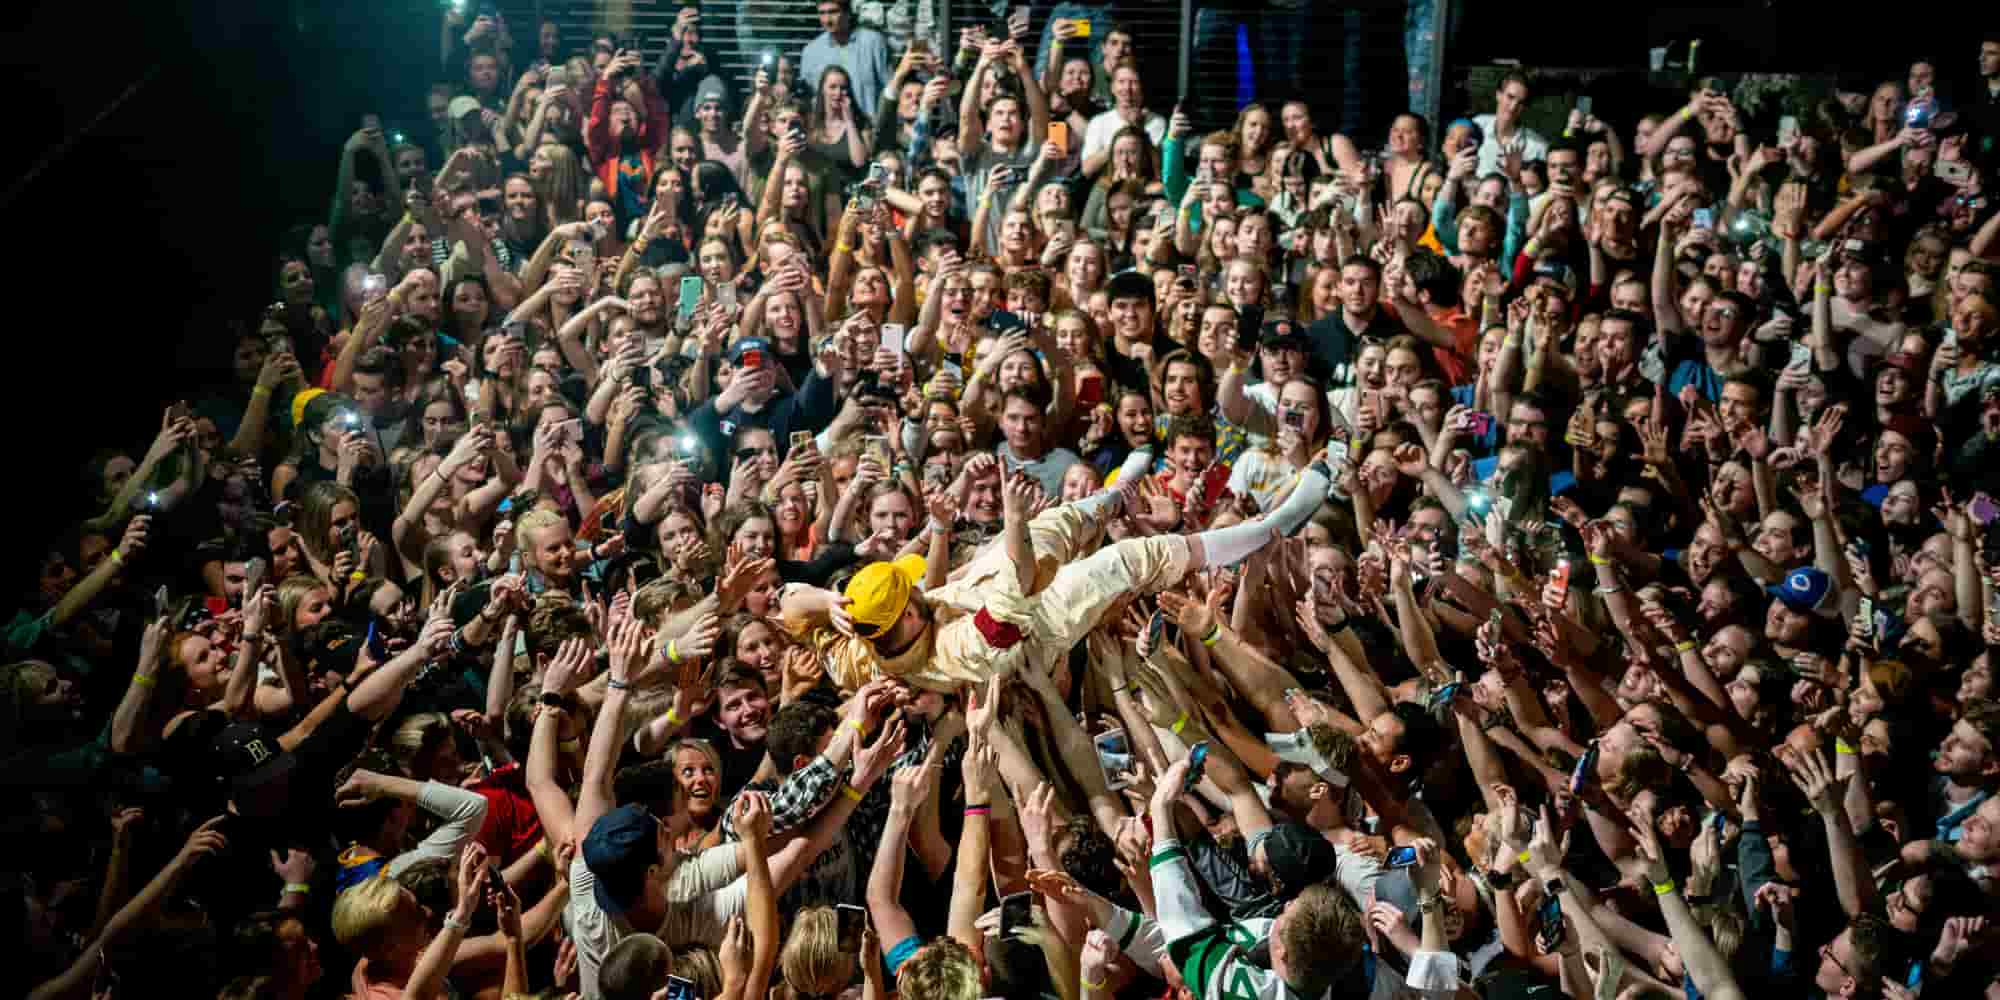 Quinn XCII Crowd Surfs From Tour With Love Myth